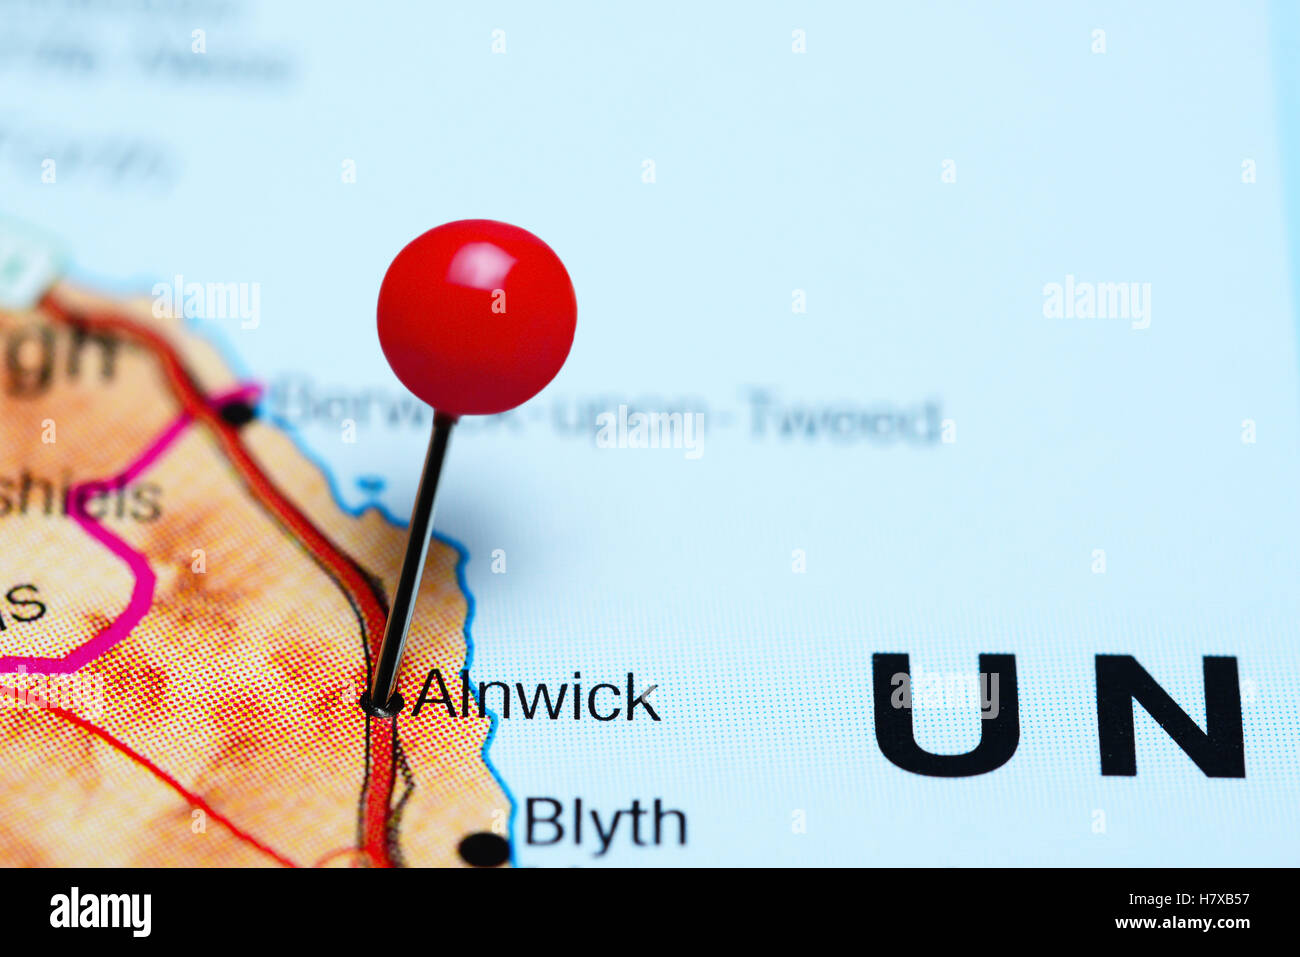 Alnwick pinned on a map of UK - Stock Image